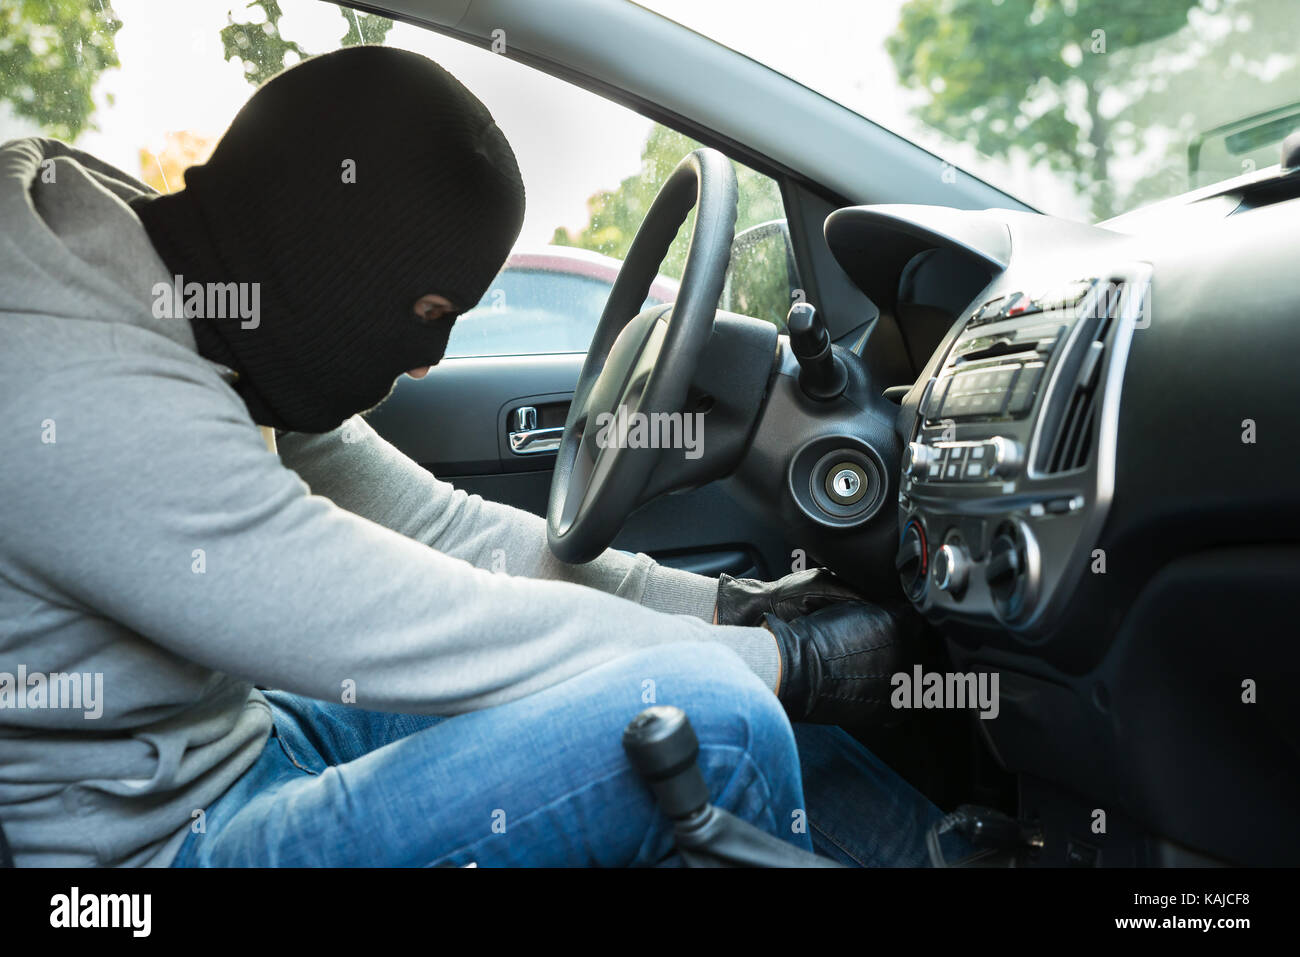 car lock steering stockfotos car lock steering bilder alamy. Black Bedroom Furniture Sets. Home Design Ideas